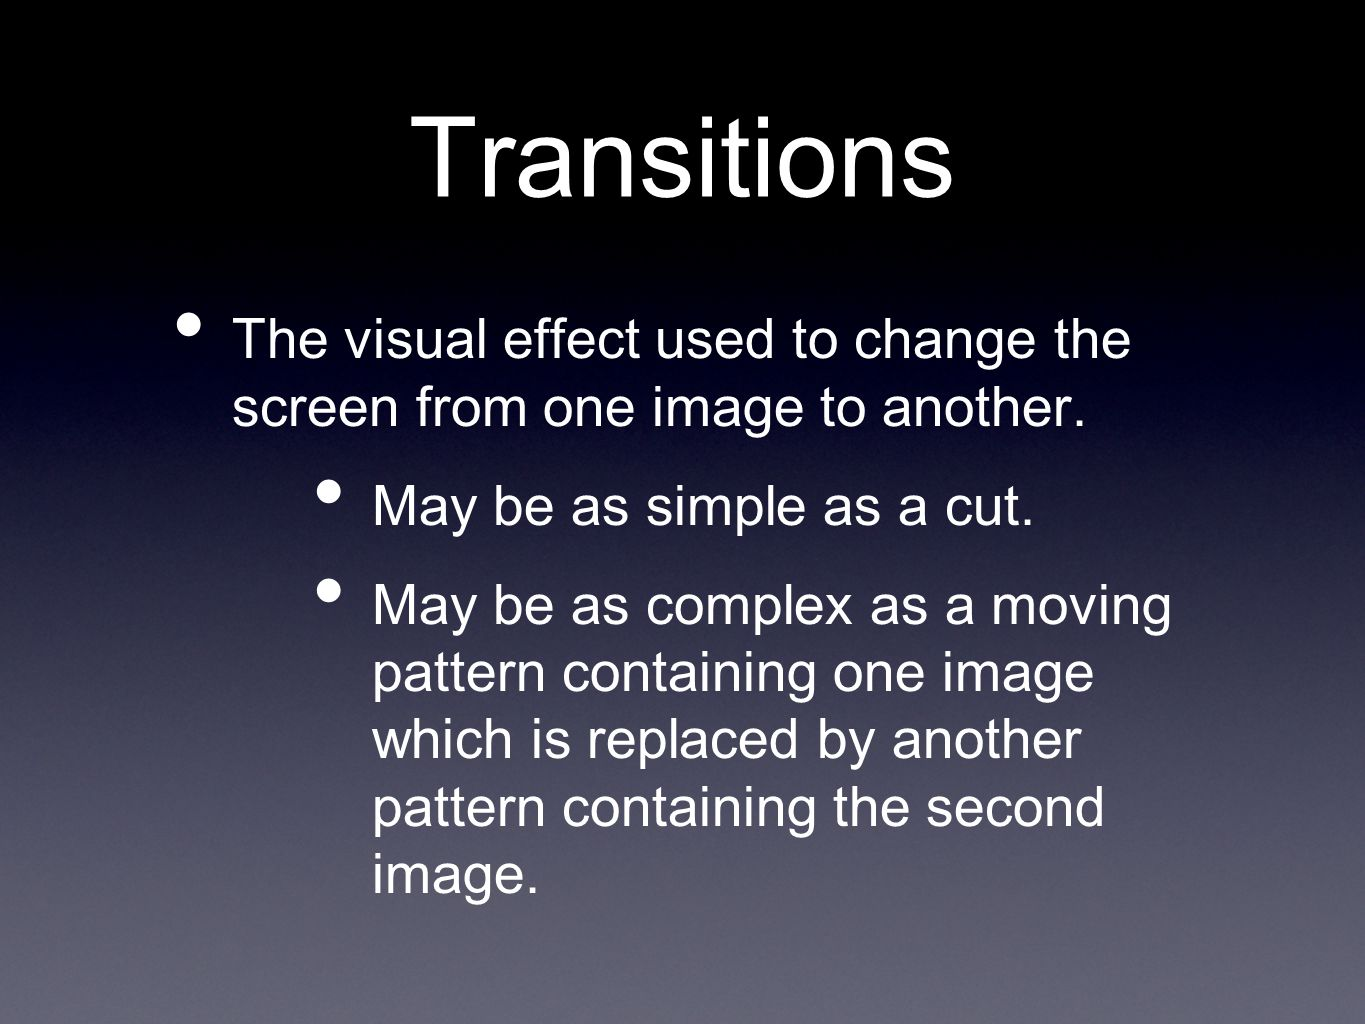 Transitions The visual effect used to change the screen from one image to another.